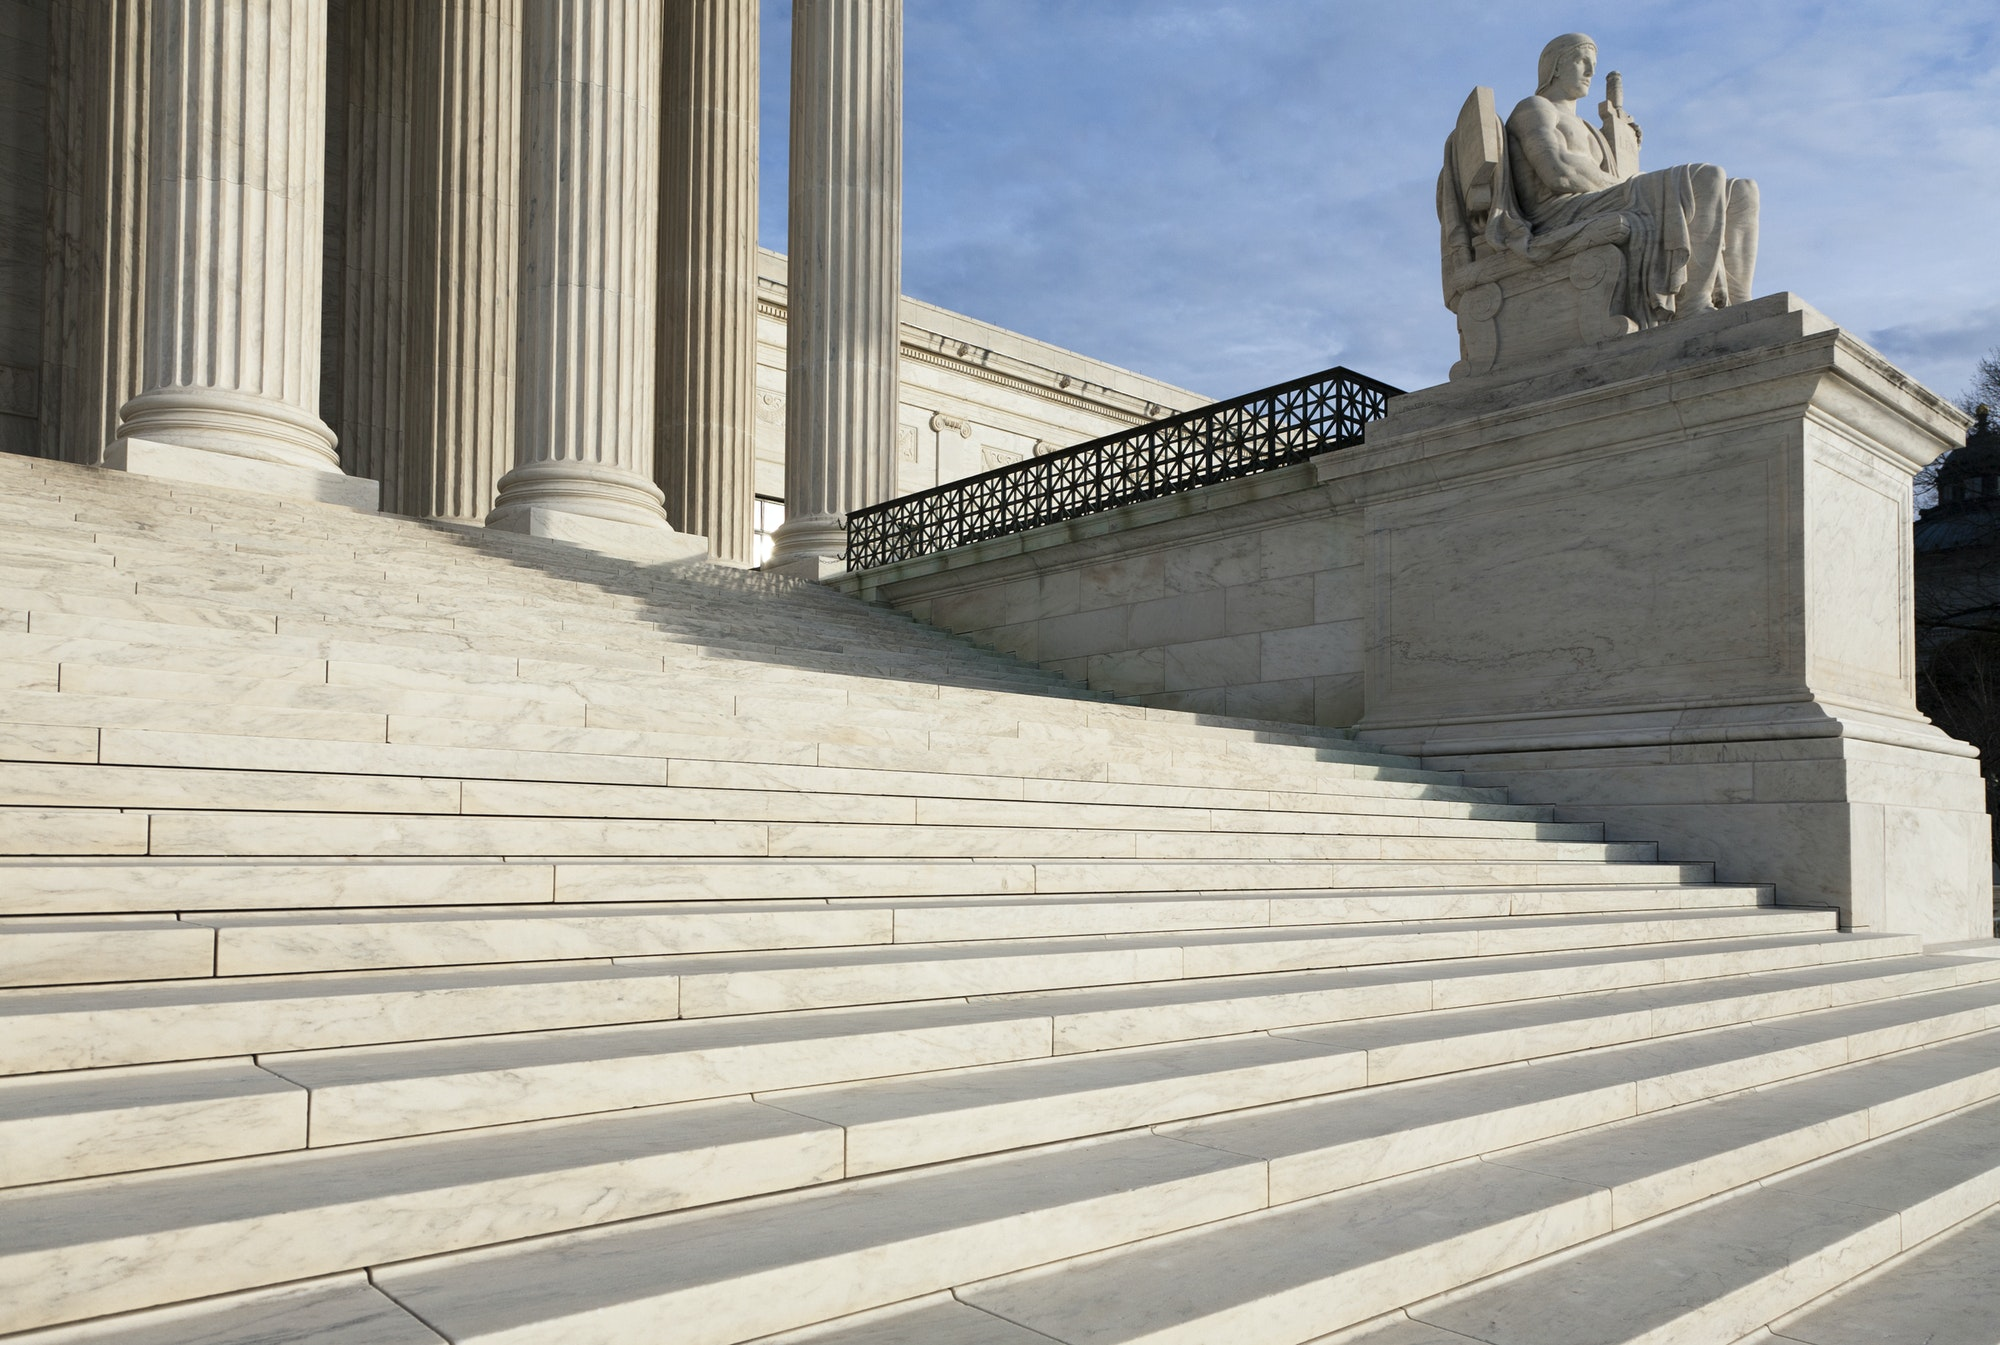 Steps and Statue of the Supreme Court Building